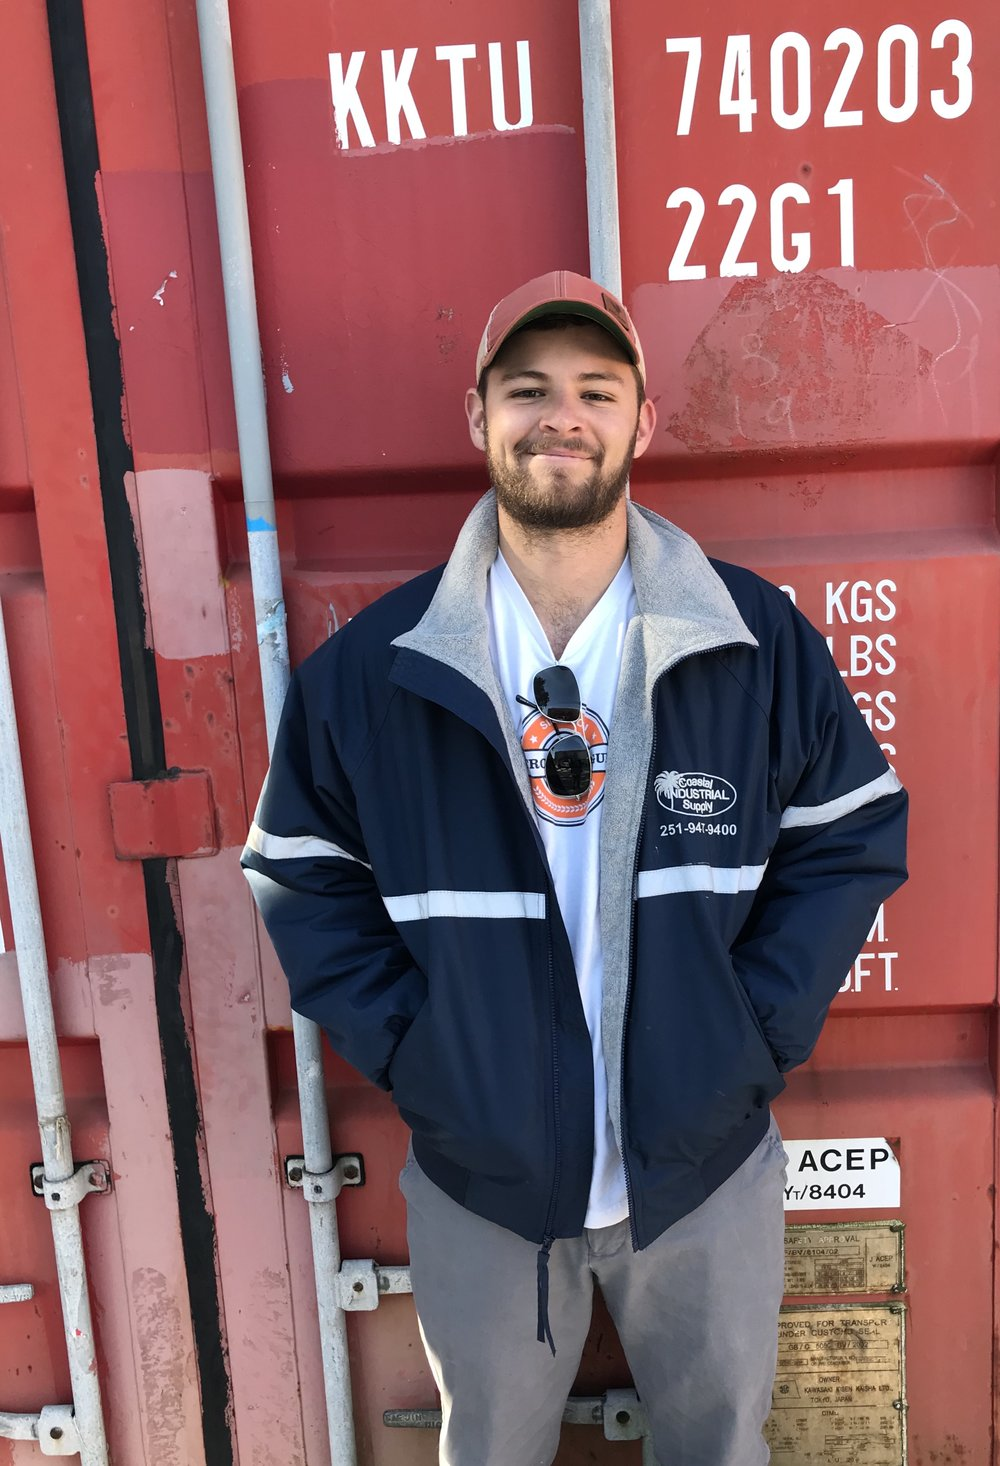 "JAKE BUSHAW - SALES- BALDWIN AND SURROUNDING COUNTIES""I'm Jake and I am 23 years old. I've lived in Baldwin County for most of my life and have been working at Coastal for 4 years. I love working in sales because I enjoy the lasting relationships built with people and their companies and helping people flourish within their line of work. Outside of work I enjoy tending to my rooftop garden and competing in nationwide chess tournaments. If you have any questions or need a quote I'm happy to help jake@coastalindsupply.com """